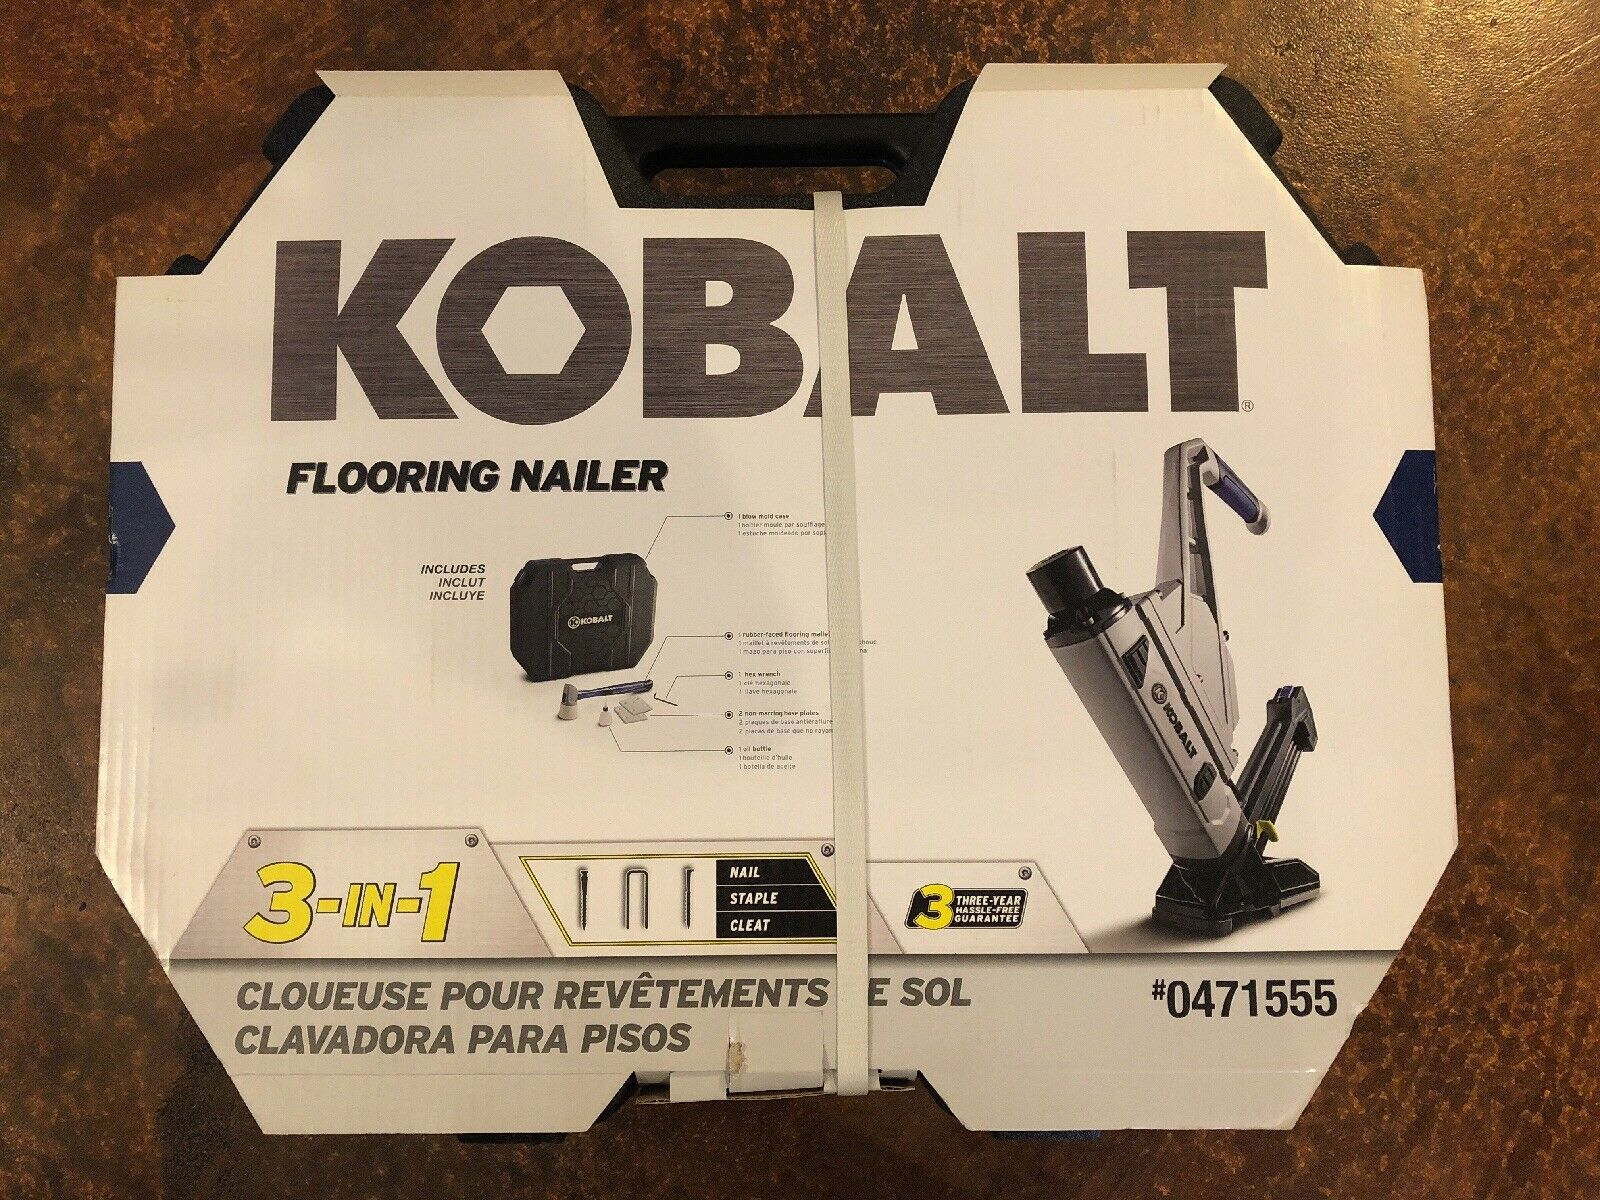 KOBALT 3-IN-1 FLOORING NAILER  NEW IN PACKAGE FREE SHIPPING   STAPLER CLEAT NAIL